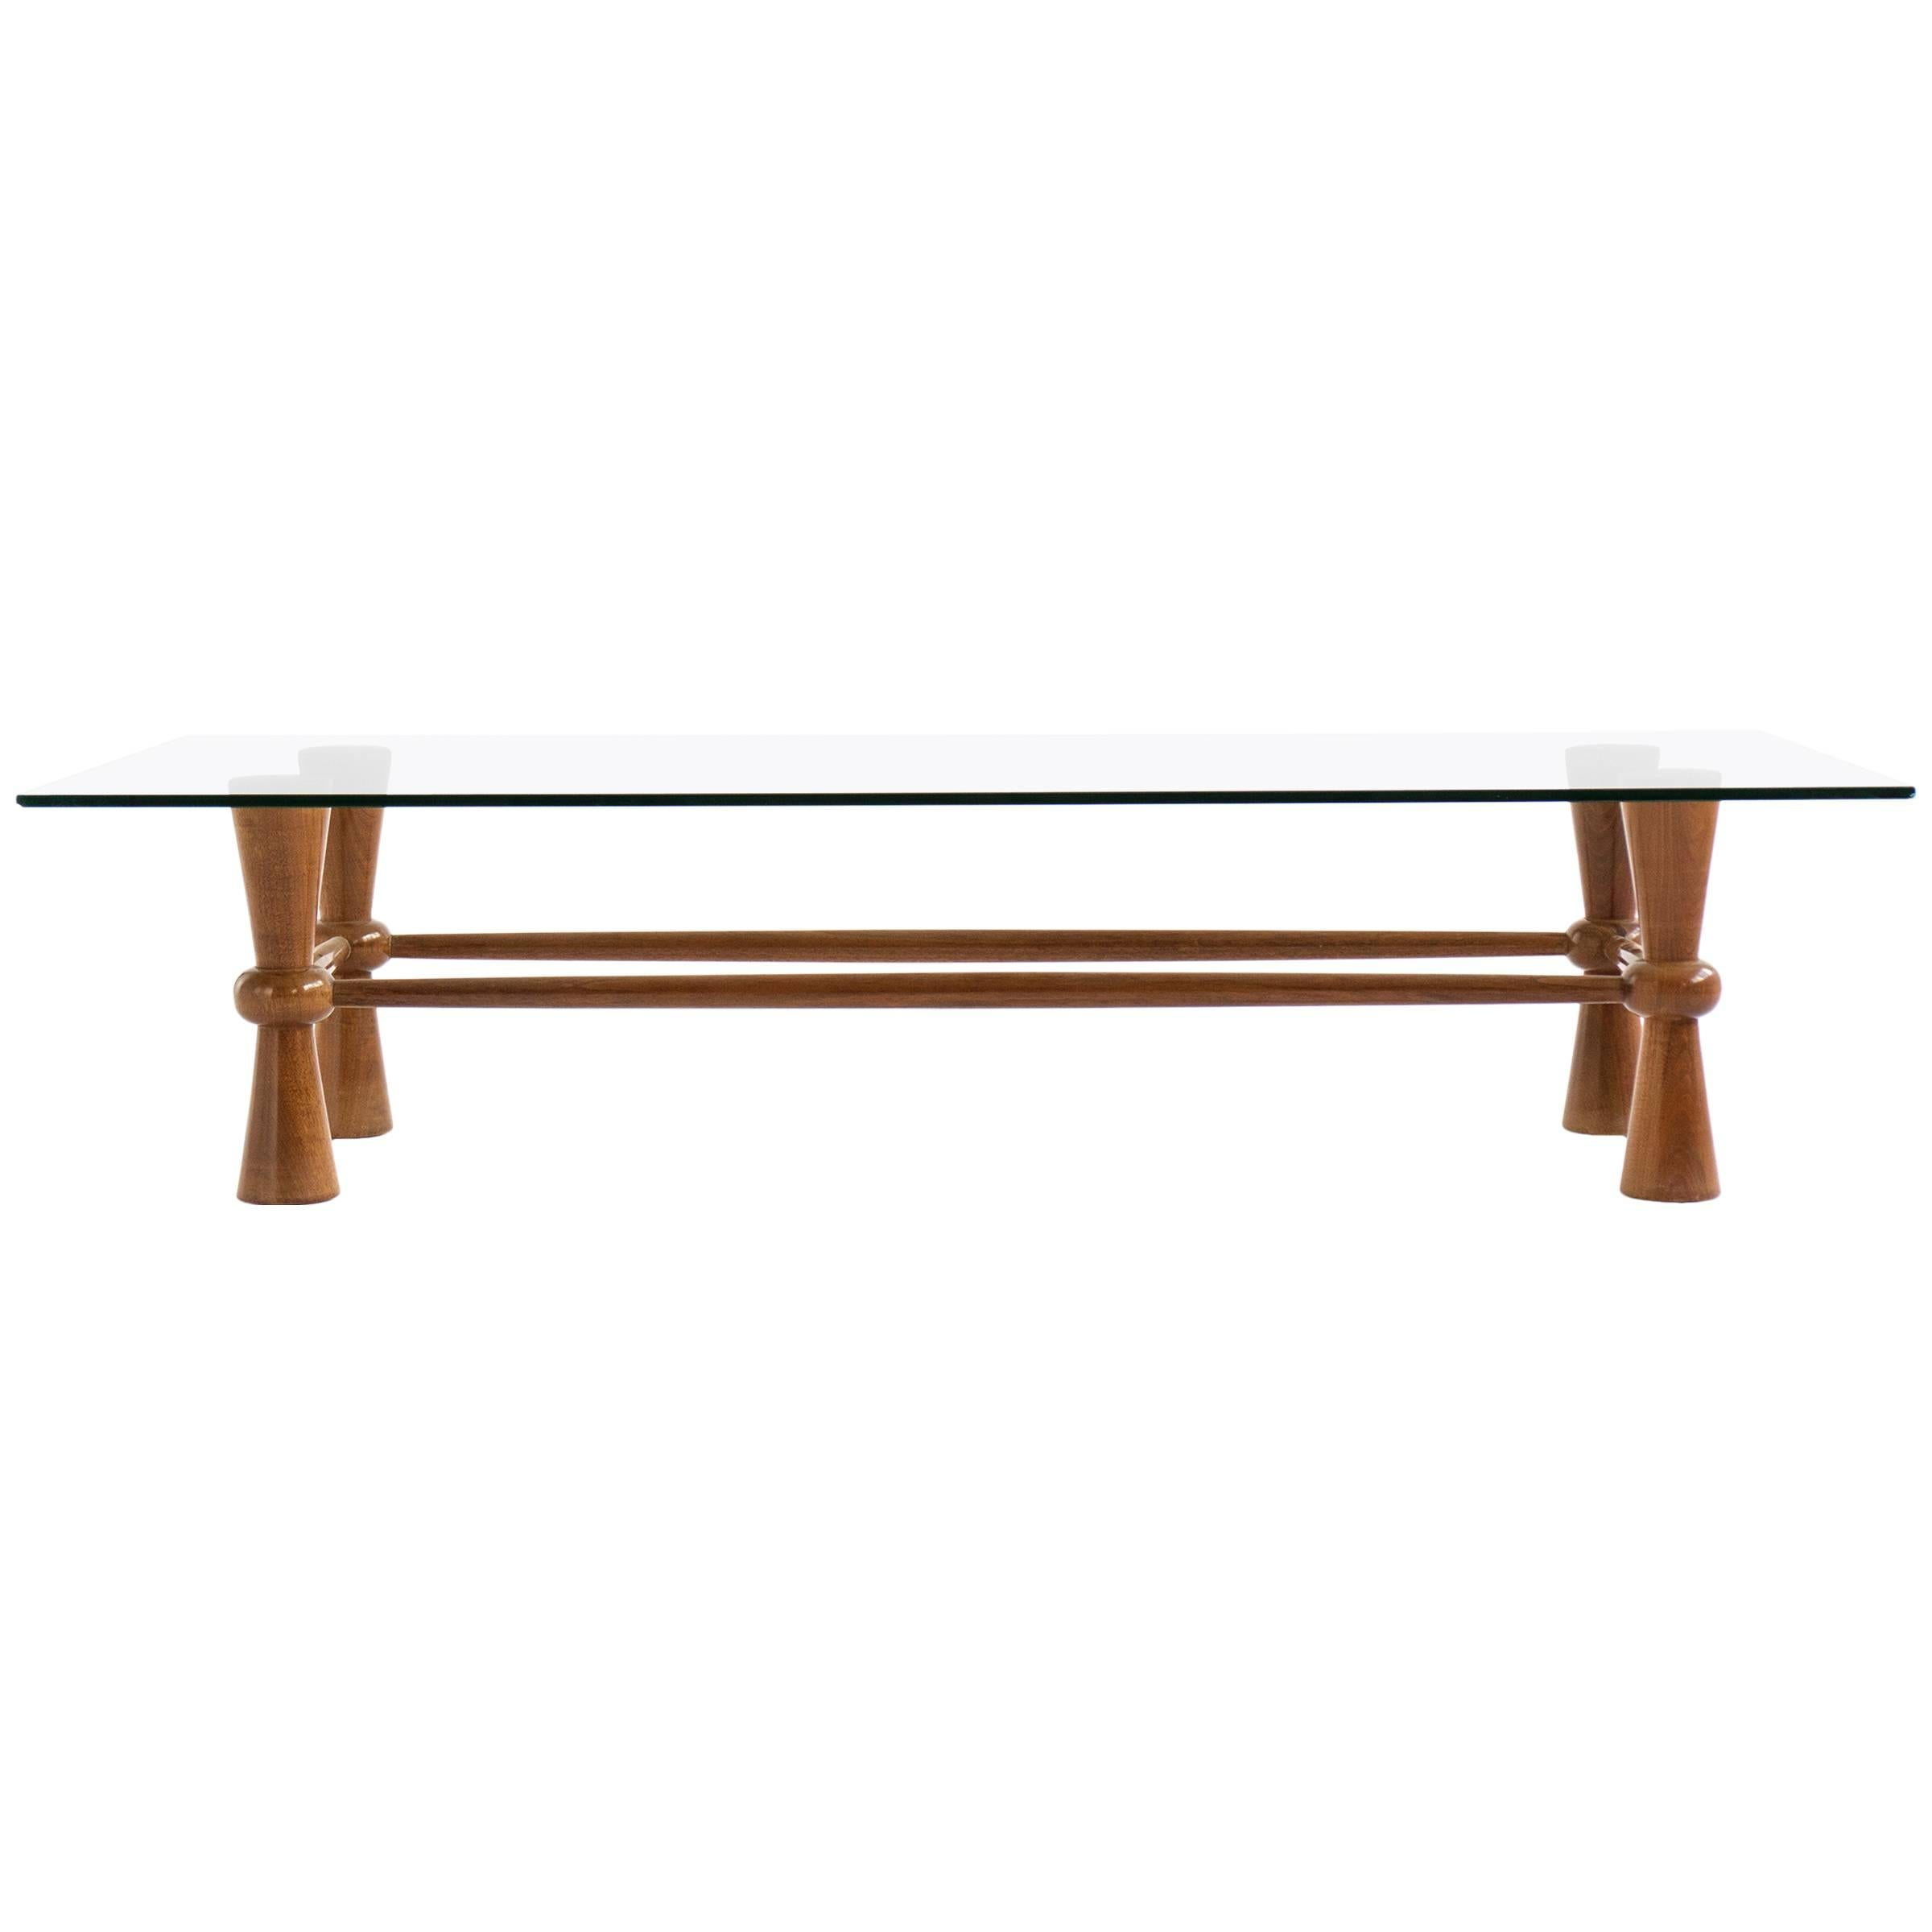 American Crafted Coffee Table